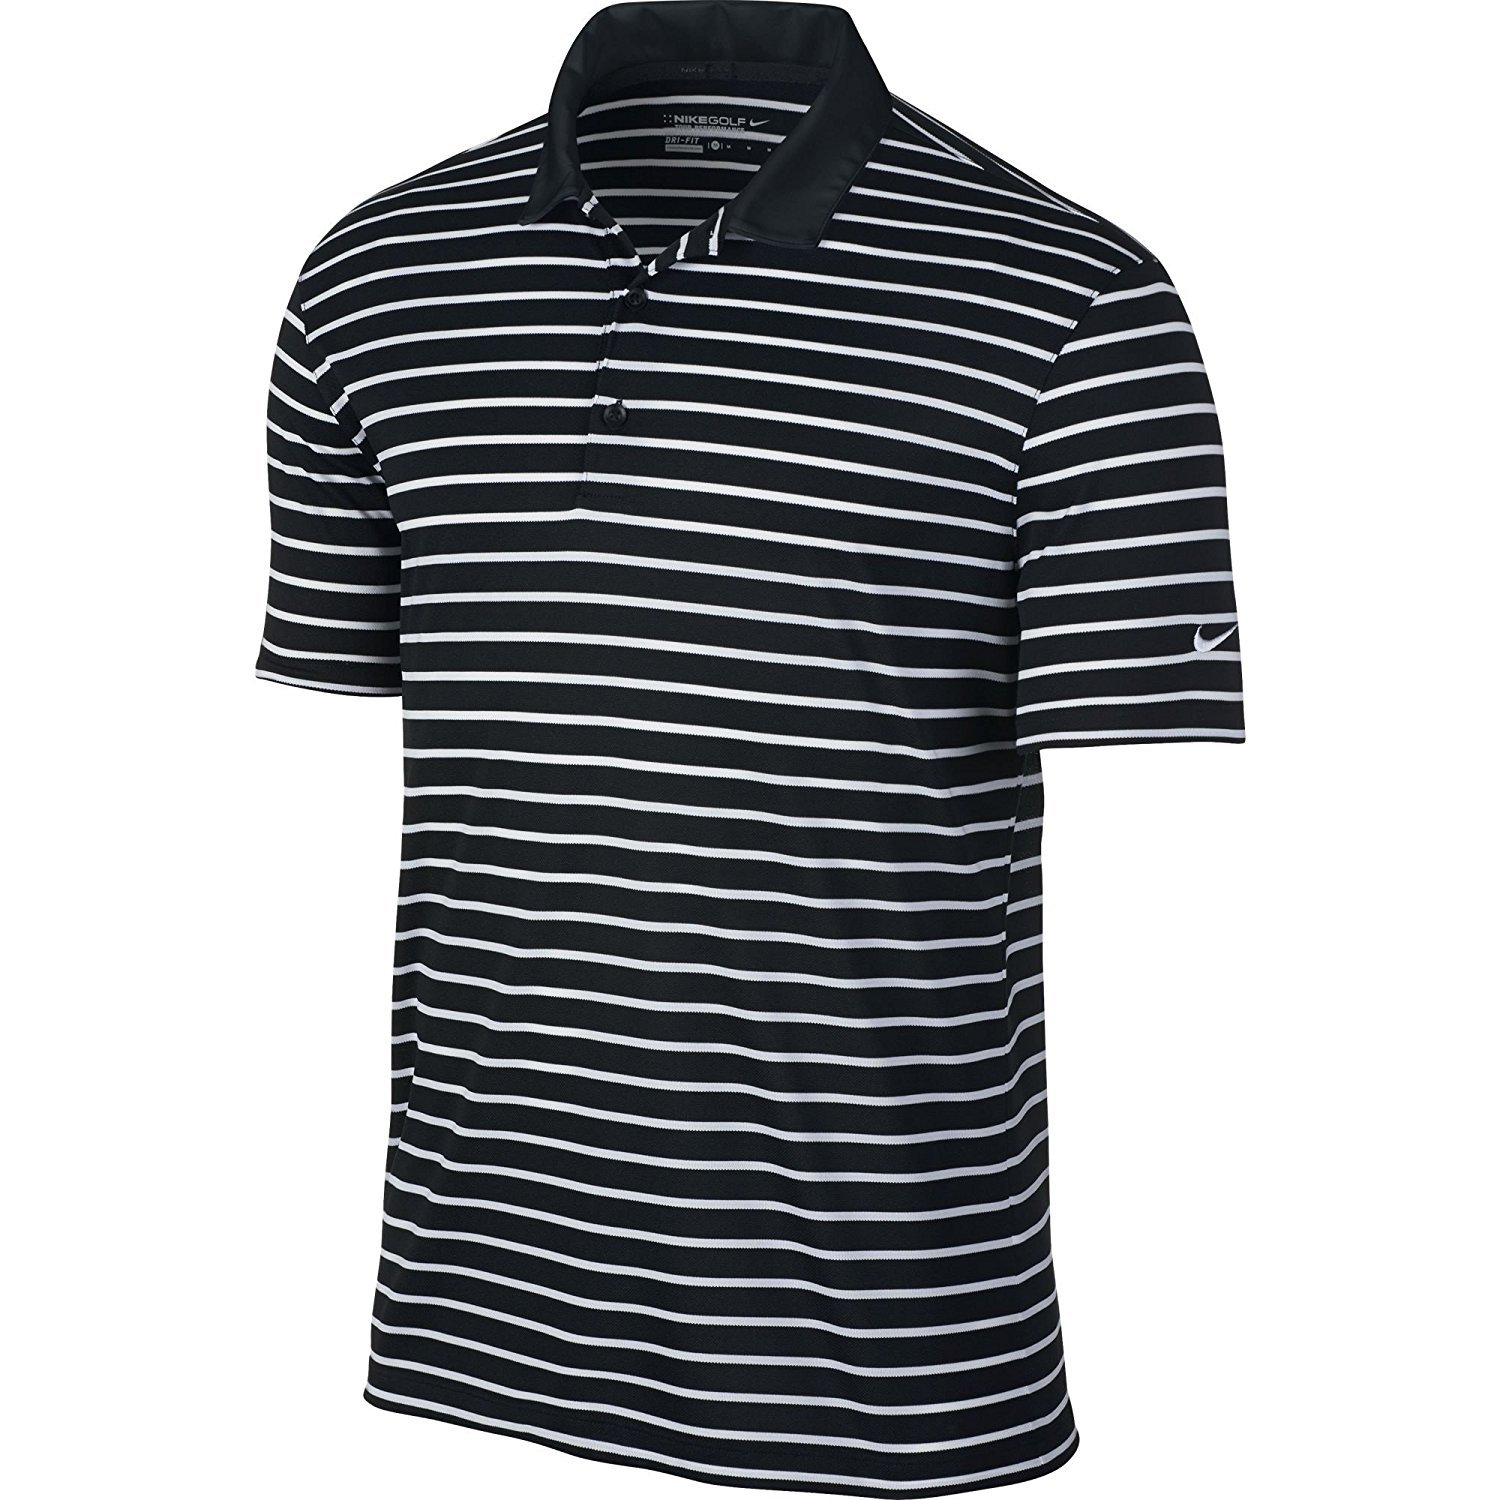 5afe844f1 Dri-Fit technology. Ultimate stretch and moisture management 3-button  placket. Improved fit and construction. The Icon Stripe Polo from Nike ...